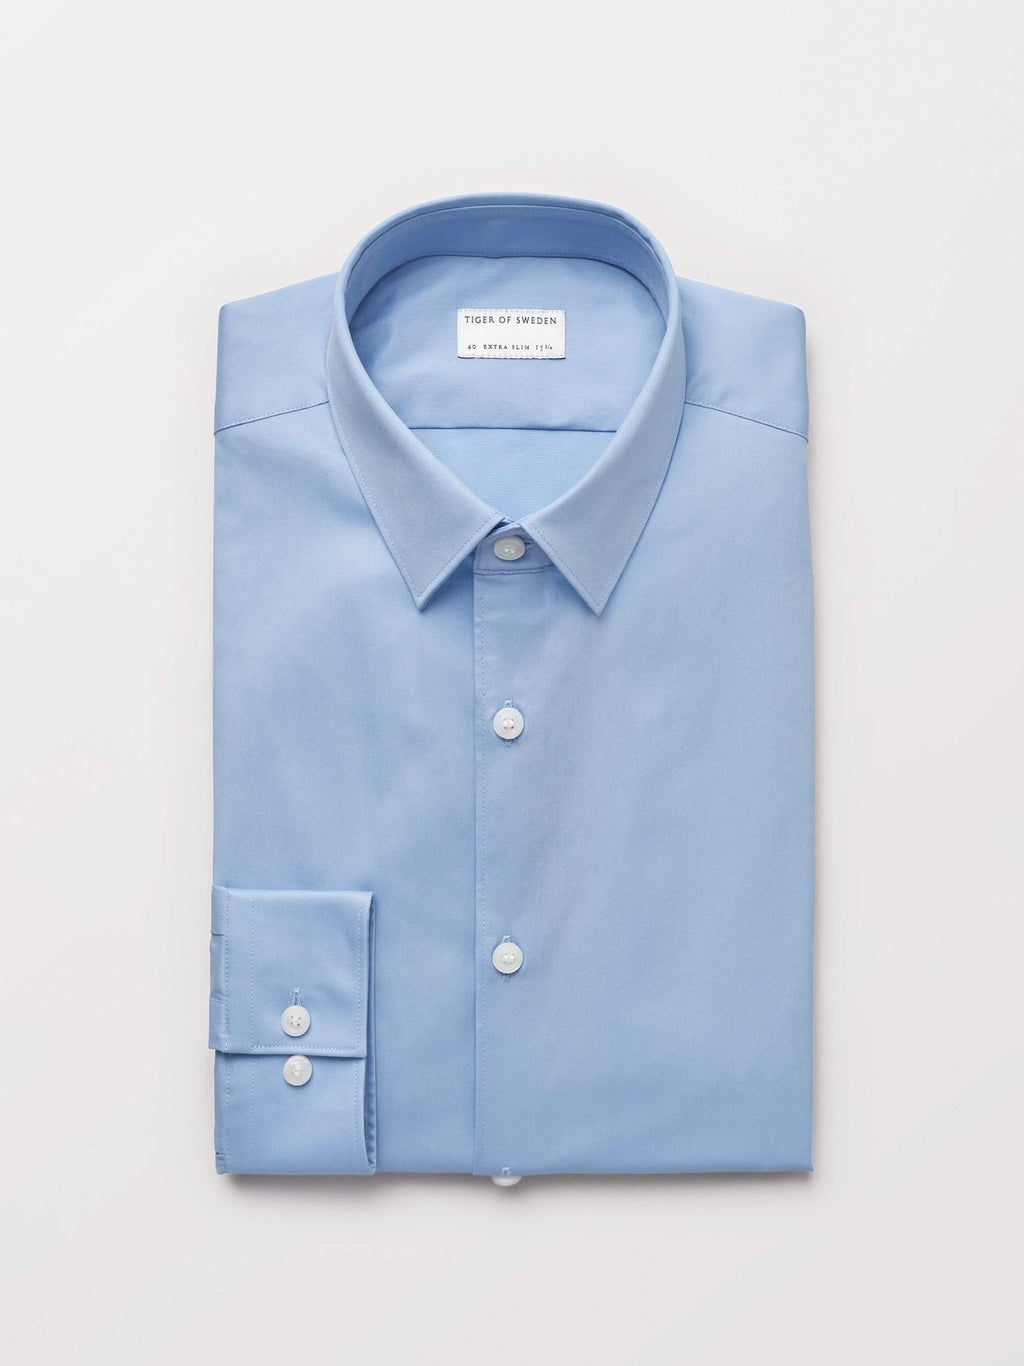 Blue shirt for men classical summer 2019